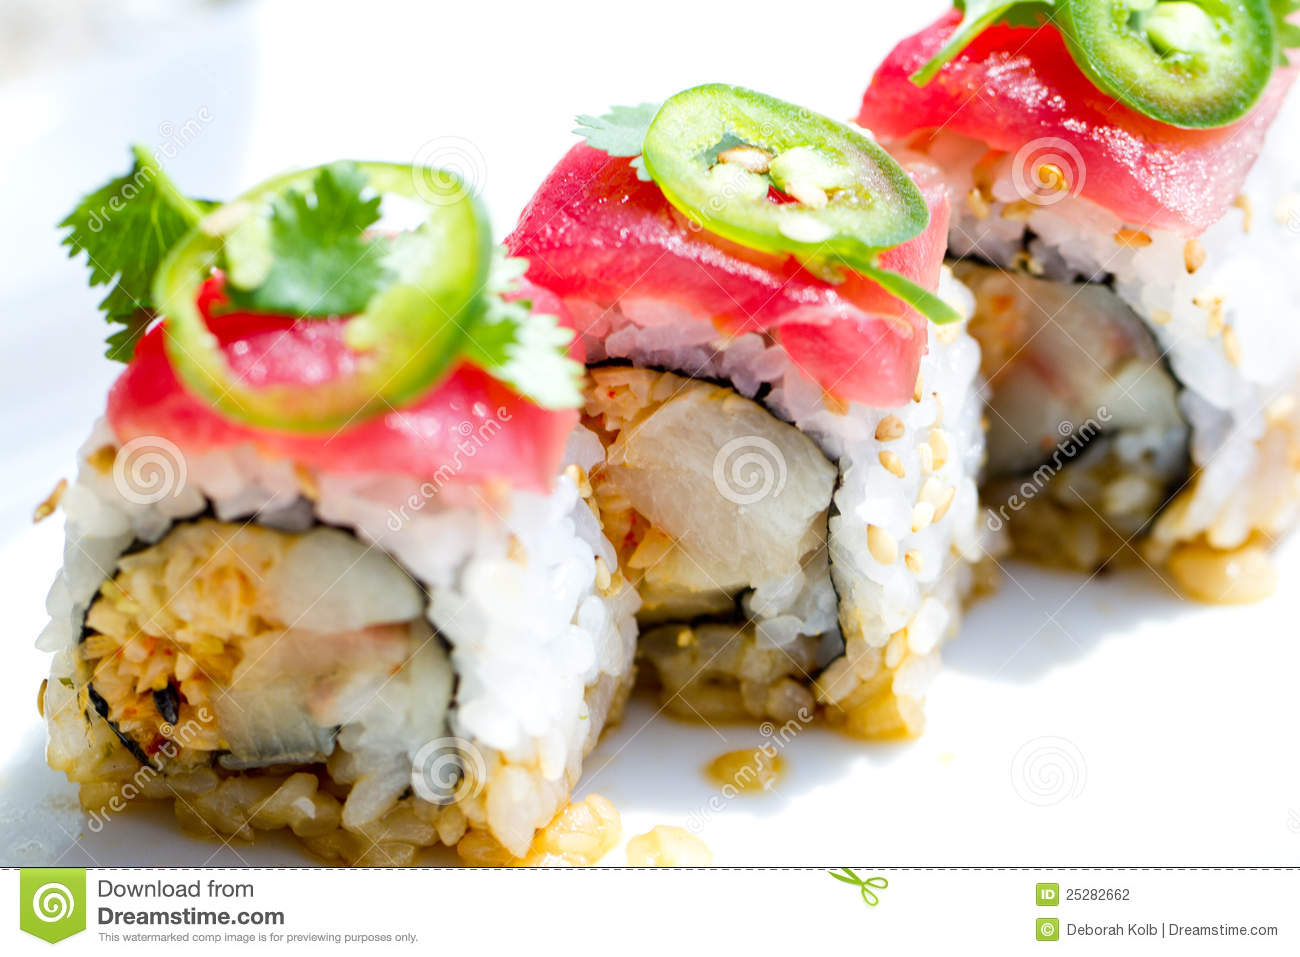 Sushi Tuna Roll Stock Photography - Image: 25282662